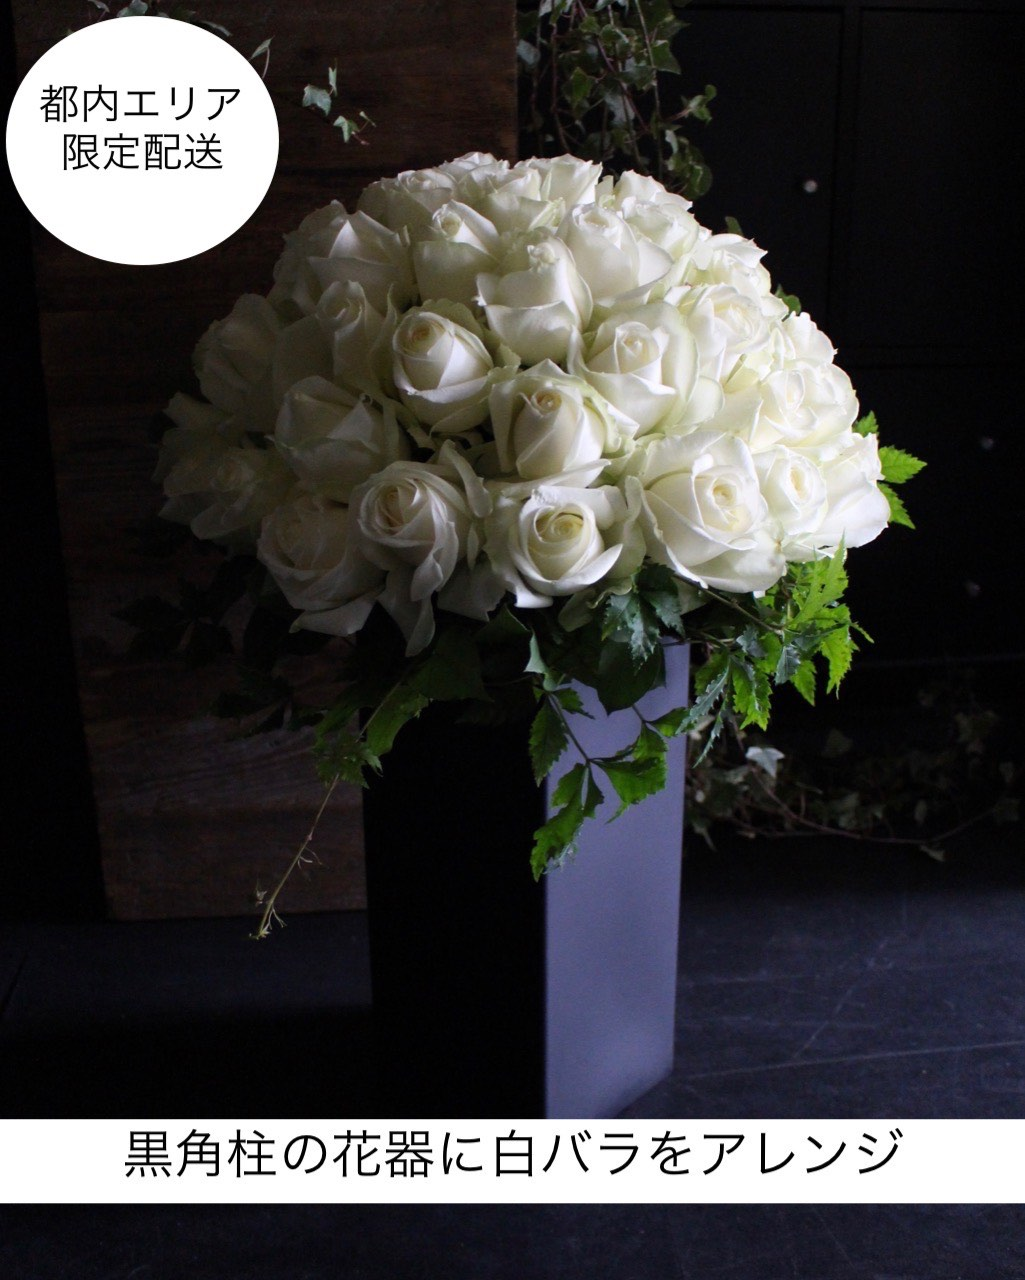 黒白 kokubyaku 黒角柱の花器に白バラ White rose arrangement [Arrangement Special]  #002